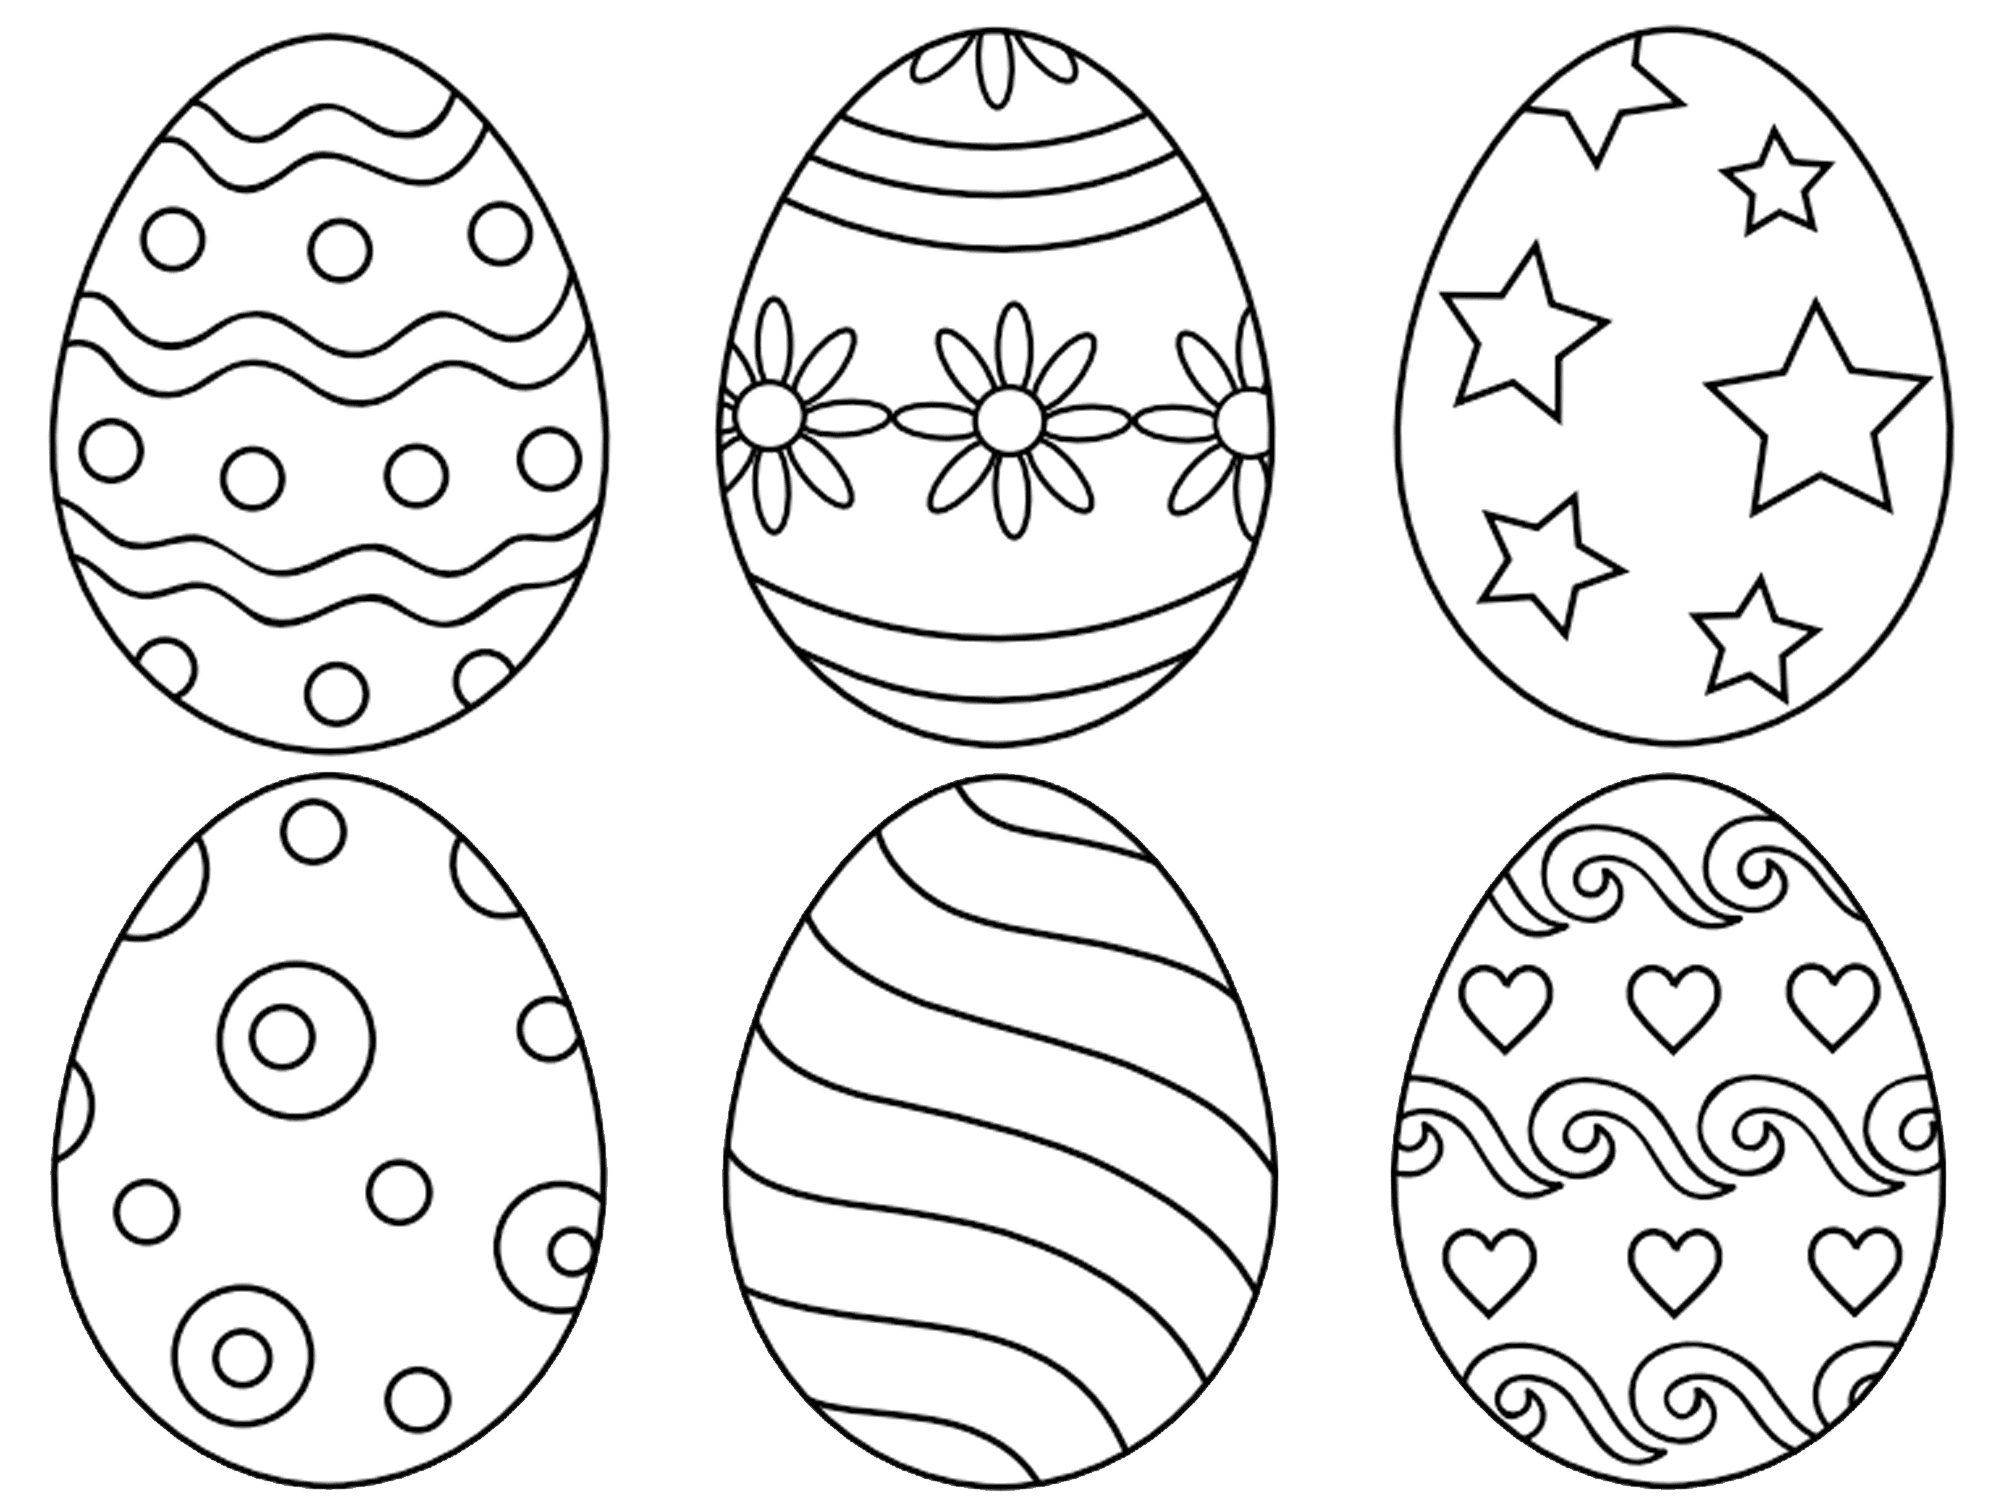 free printable easter egg coloring pages for the kids - Easter Color Pages